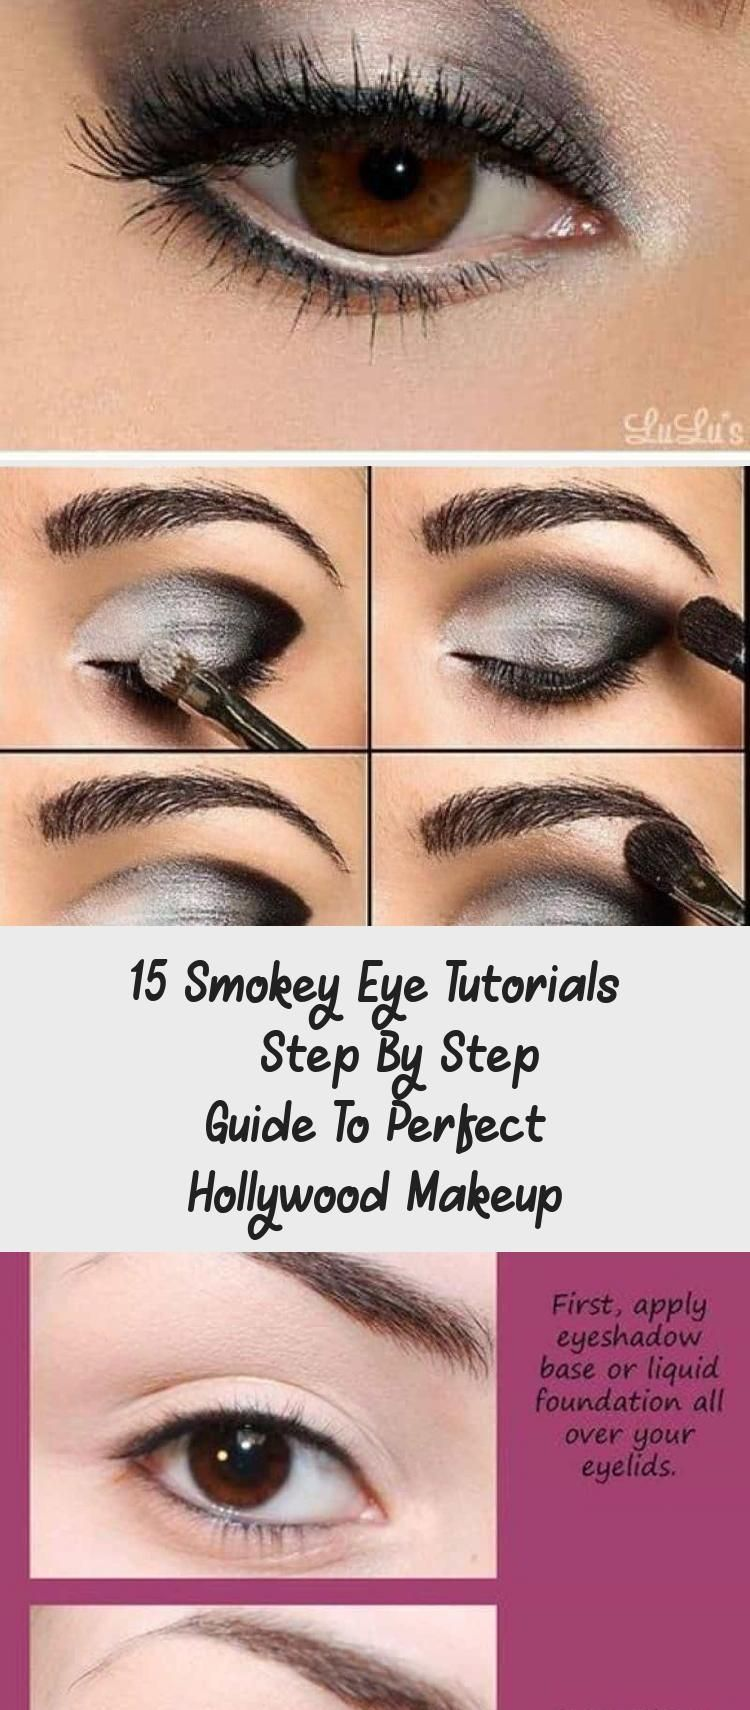 15 Smokey Eye Tutorials Step By Step Guide To Perfect Hollywood